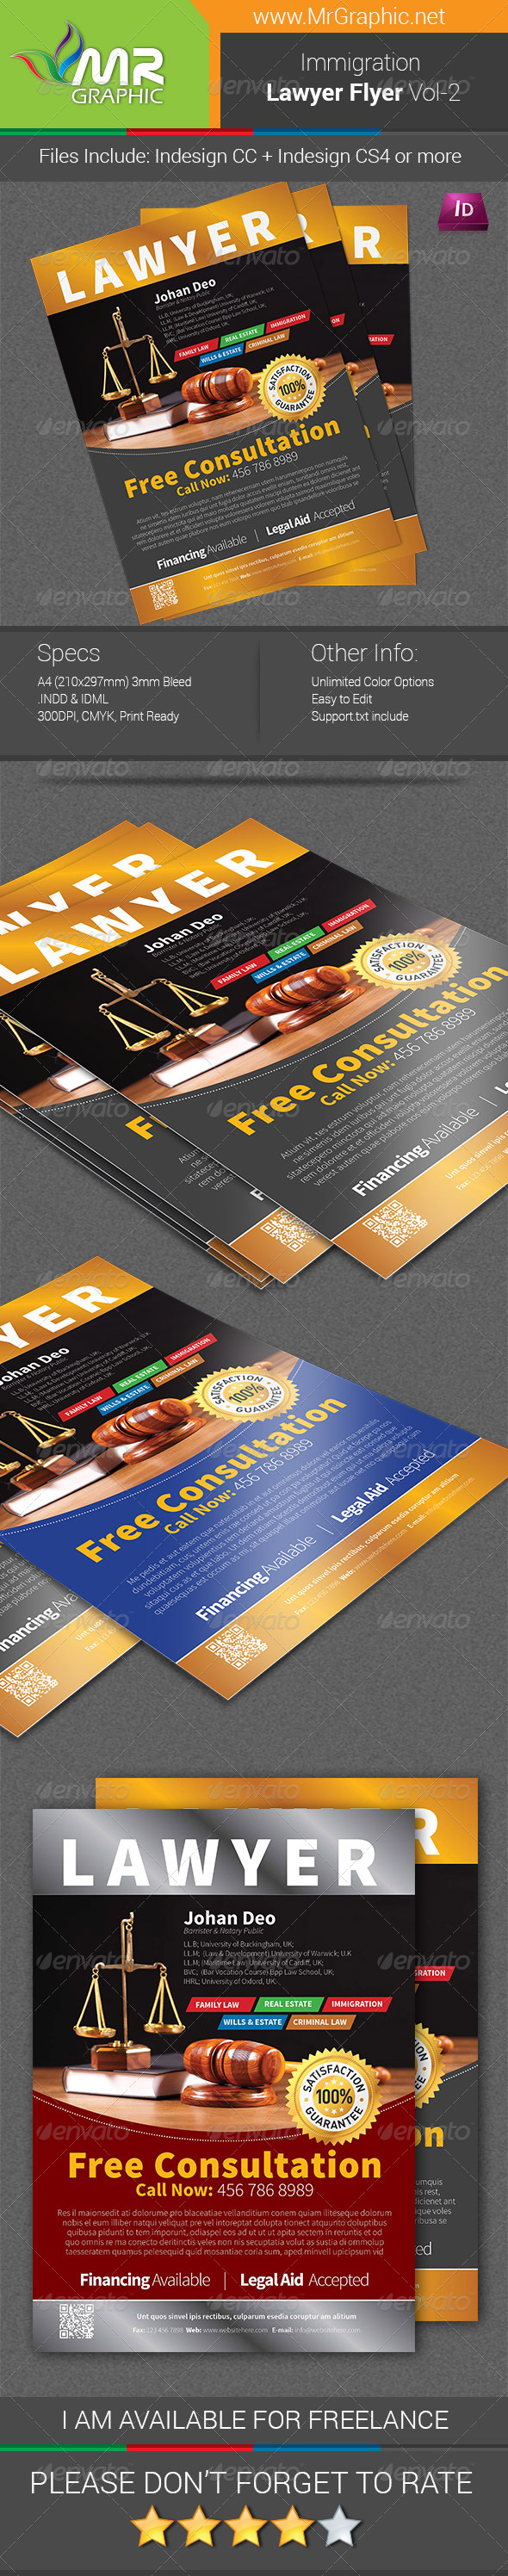 Immigration Law Flyer Template Vol-2 - Corporate Flyers